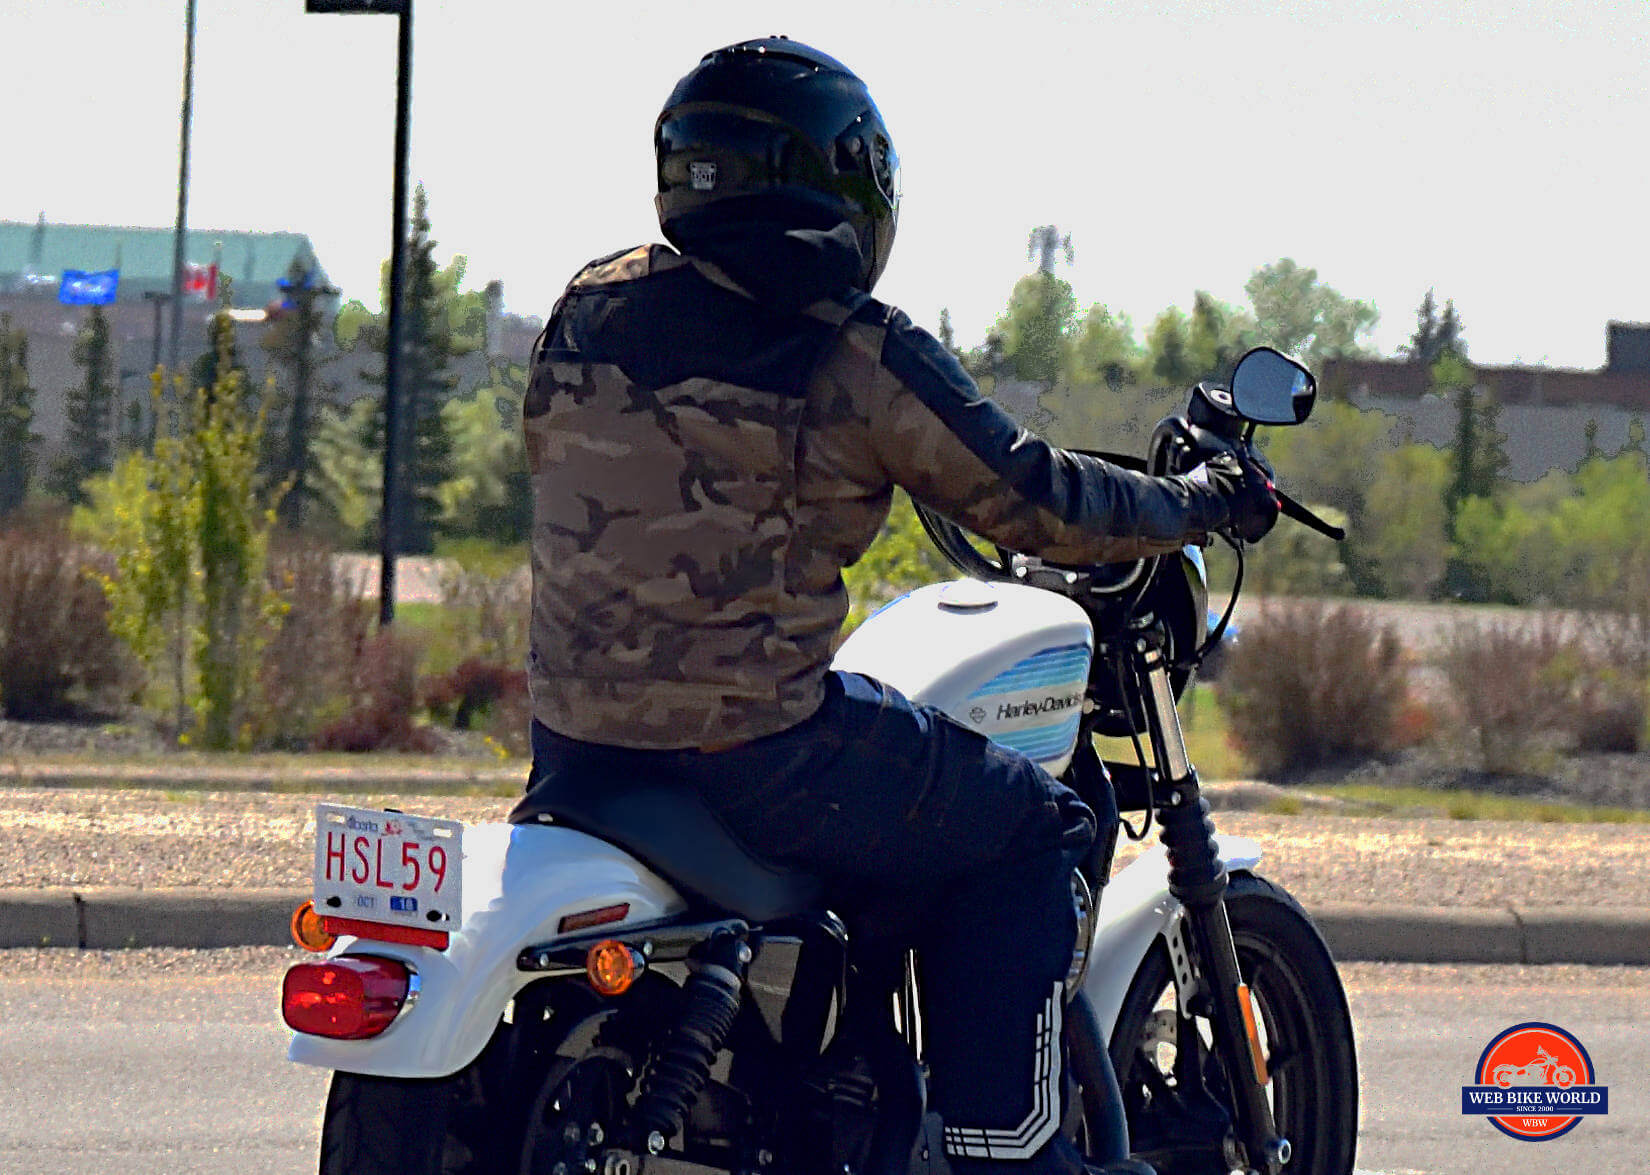 hight resolution of clymer repair manual image gallery rider in camo on top harley davidson motorcycle